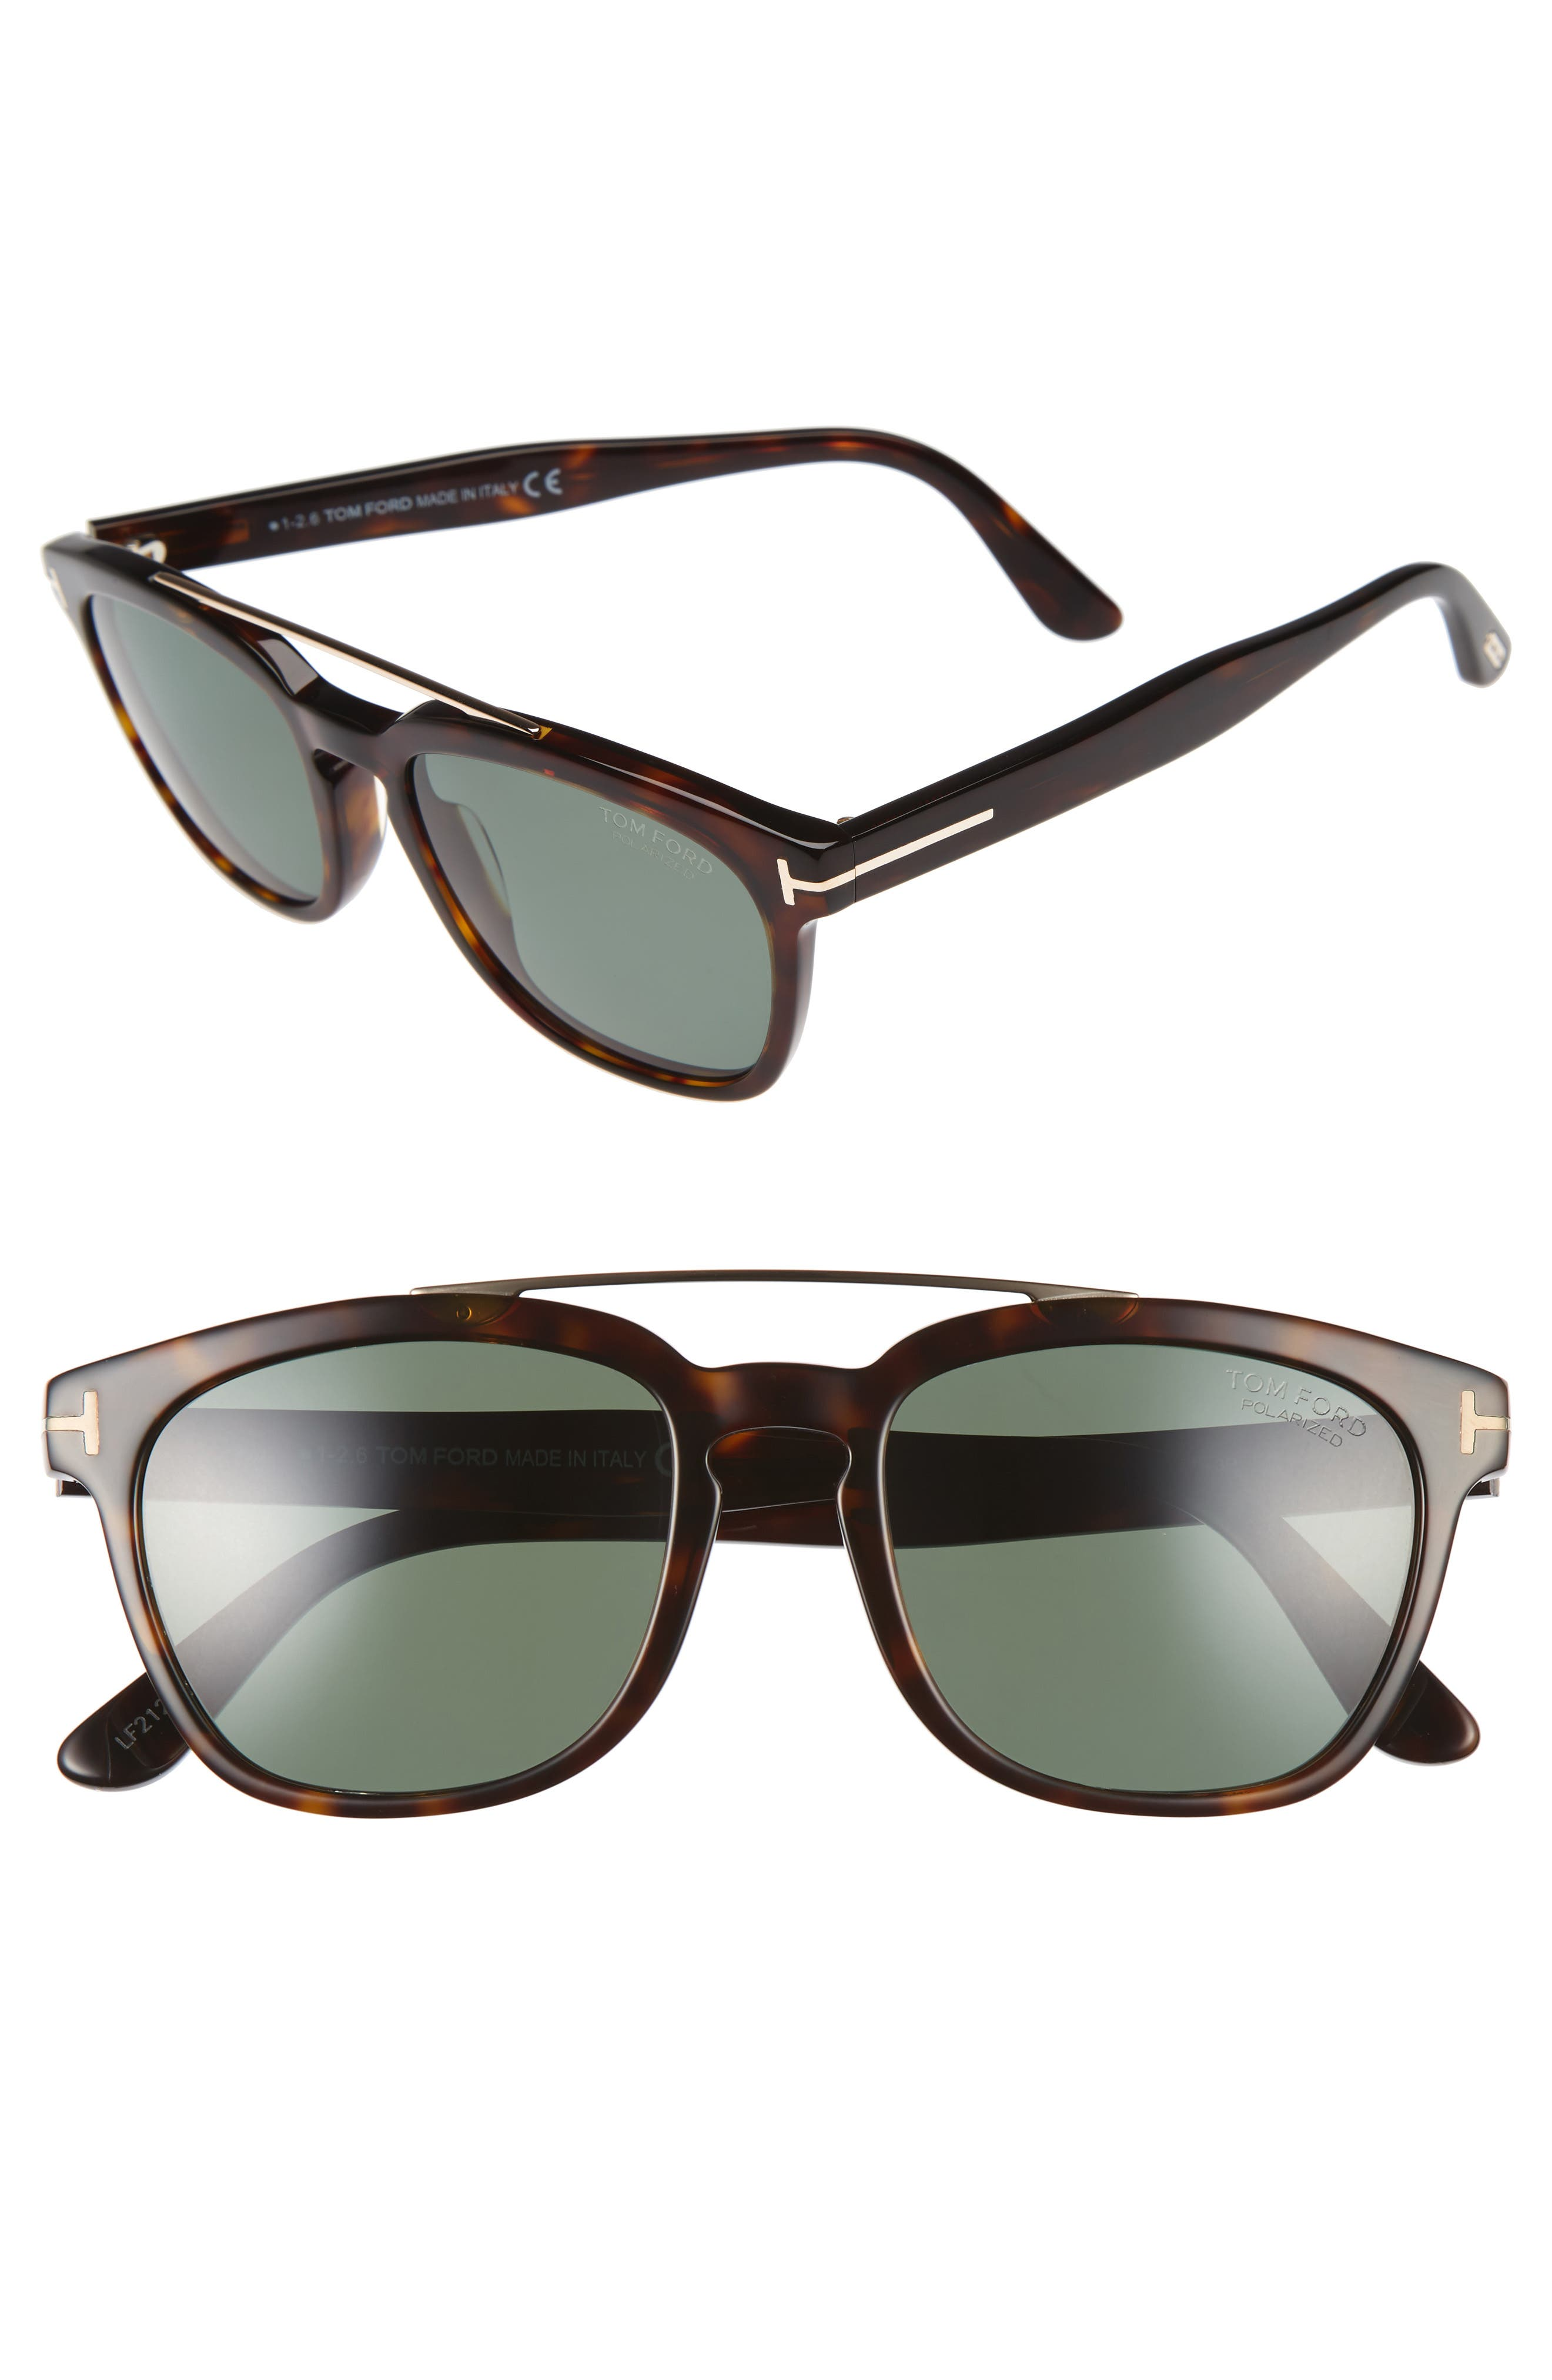 Alternate Image 1 Selected - Tom Ford Holt 54mm Polarized Sunglasses